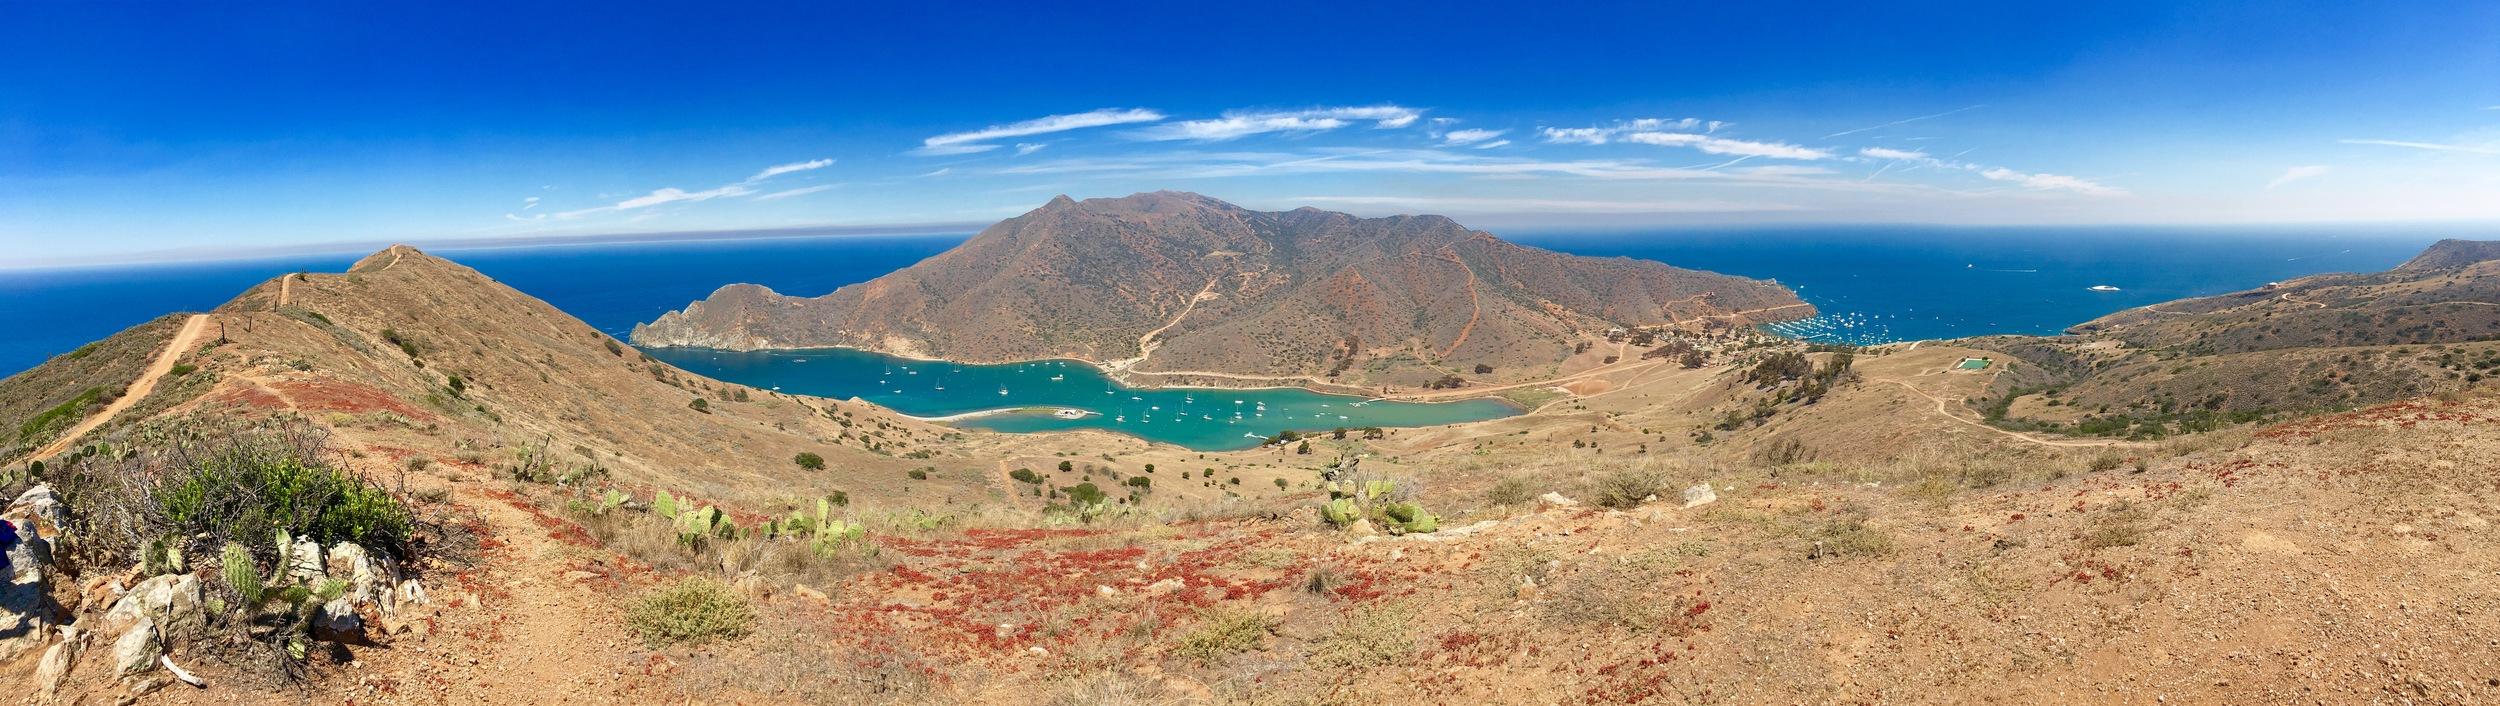 Pano of the 2 Harbors. Cat Harbor on the left and Isthmus Cove on the right.